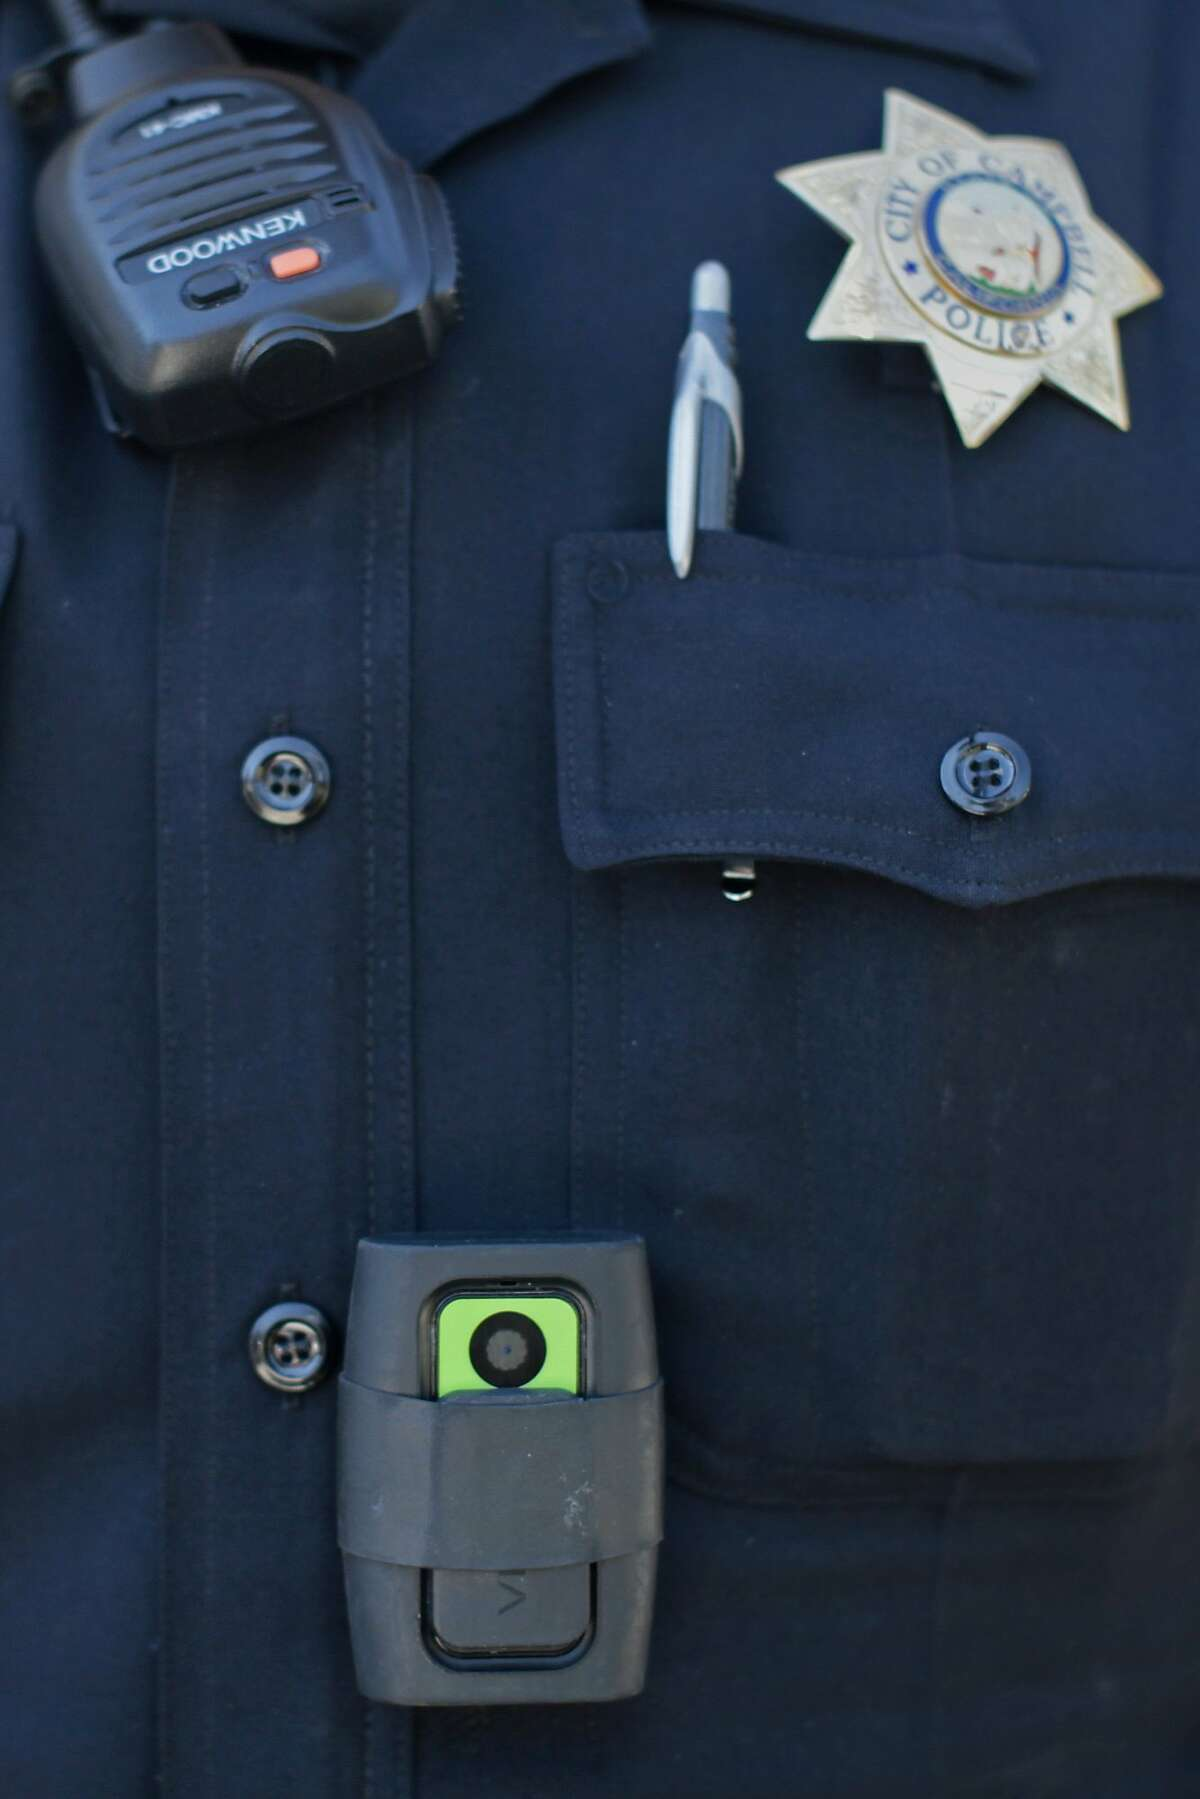 Officer Matt Ryan shows off the cameras used by Campbell Police Officers while on the job on Friday, Aug. 22, 2014 in Campbell, Calif. The Campbell Police Department says that the cameras have actually helped to exonerate police officers over the years rather than harm them.